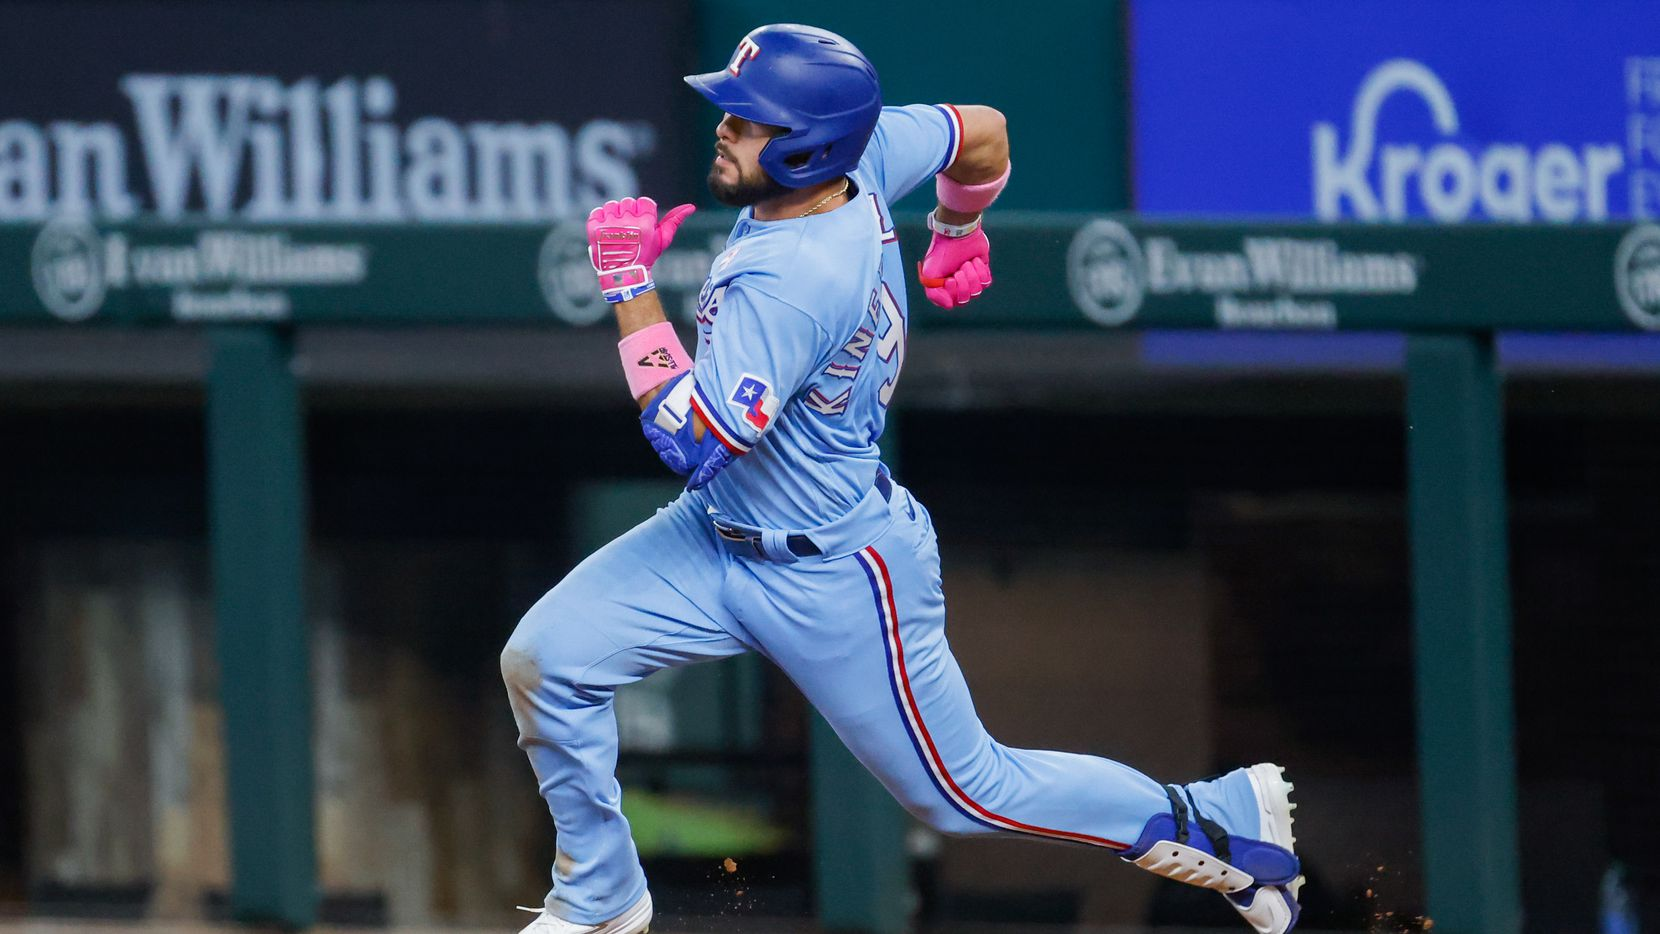 Texas Rangers third baseman Isiah Kiner-Falefa (9) doubles to right at the bottom of the eighth inning against the Seattle Mariners at Globe Life Field on Sunday, May 9, 2021, in Arlington. The Rangers won, 10-2.